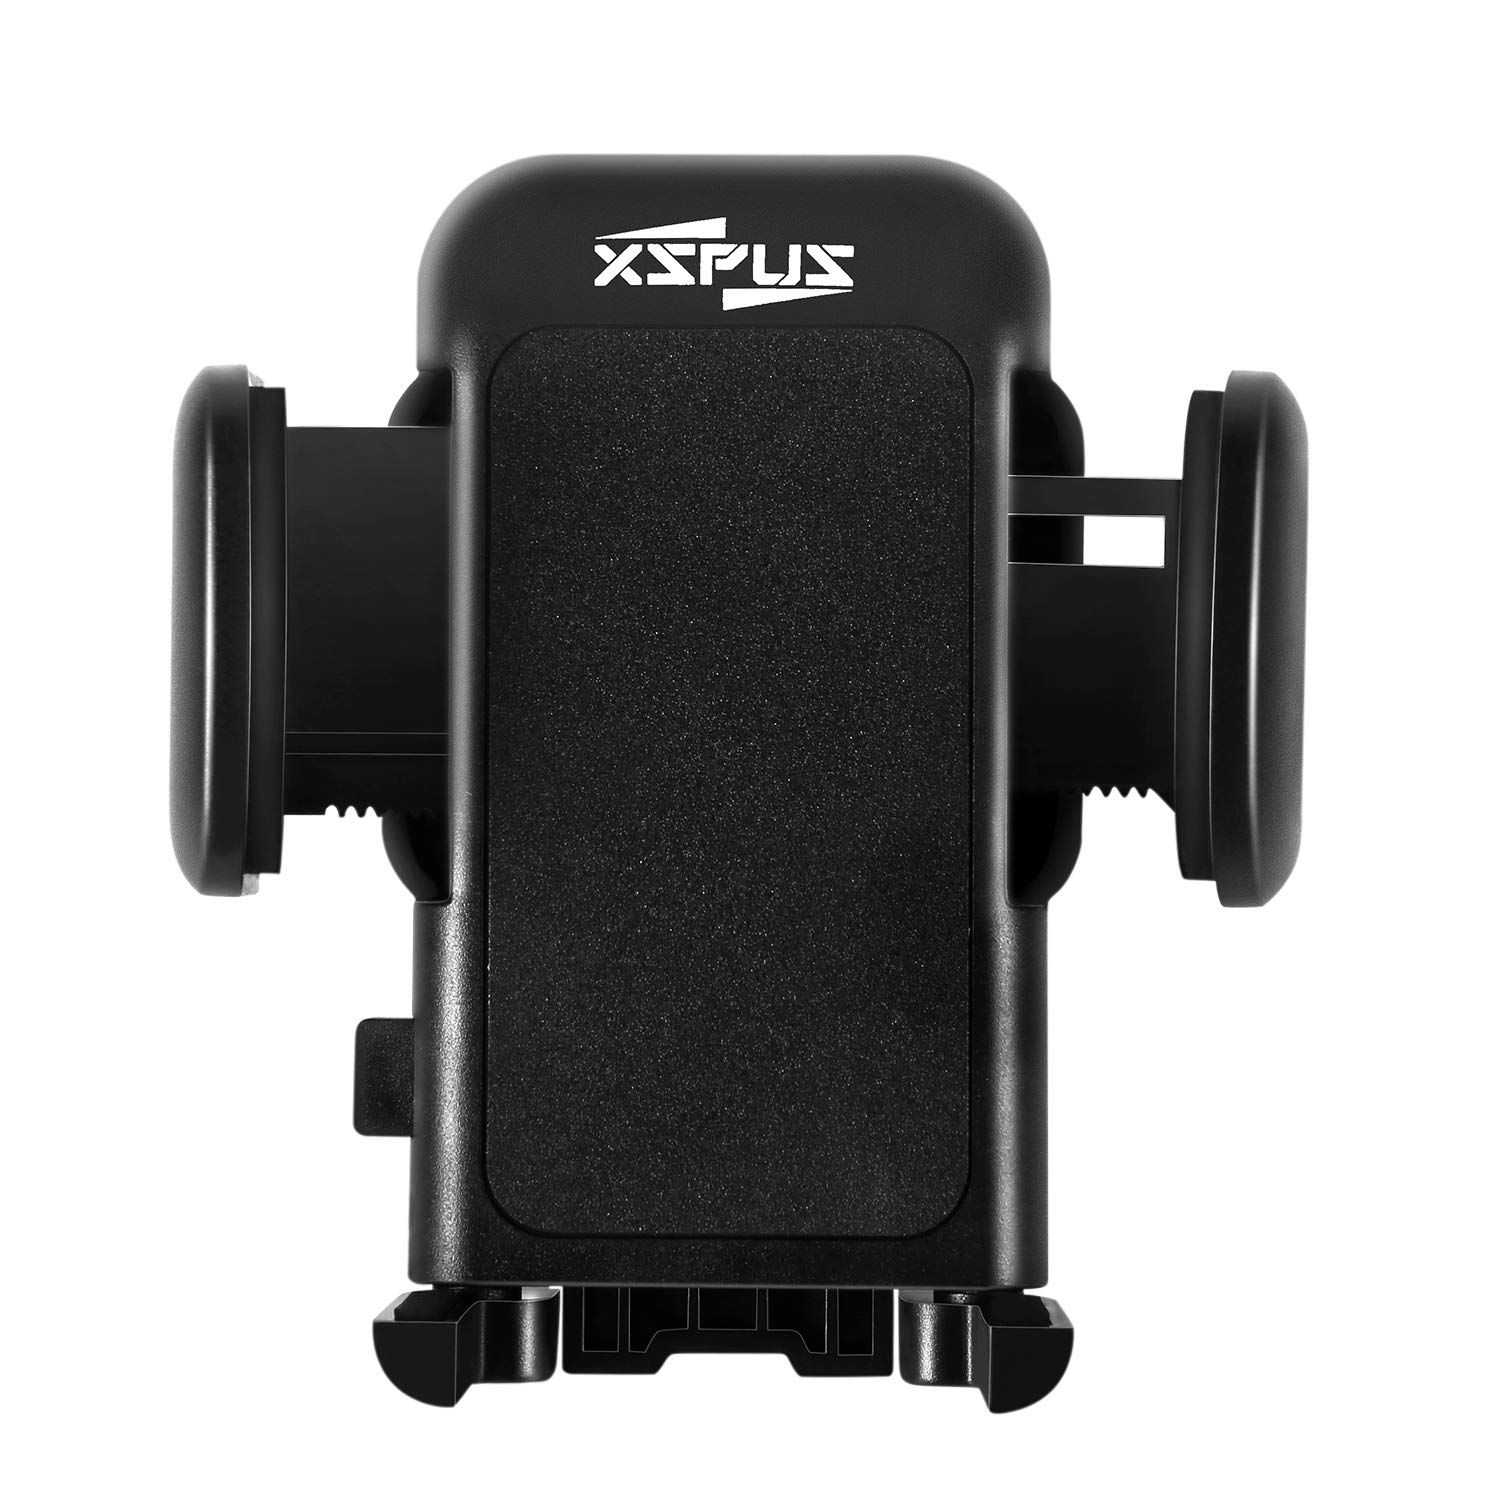 XSPUS Air Vent Car Phone Mount, Universal Car Phone Holder Manual clamping Compatible all 4 to 6.5 inch Smart Mobile Phone Stand for Car, Strong with 360 Degrees Rotation, One Hand Operation, No Tools